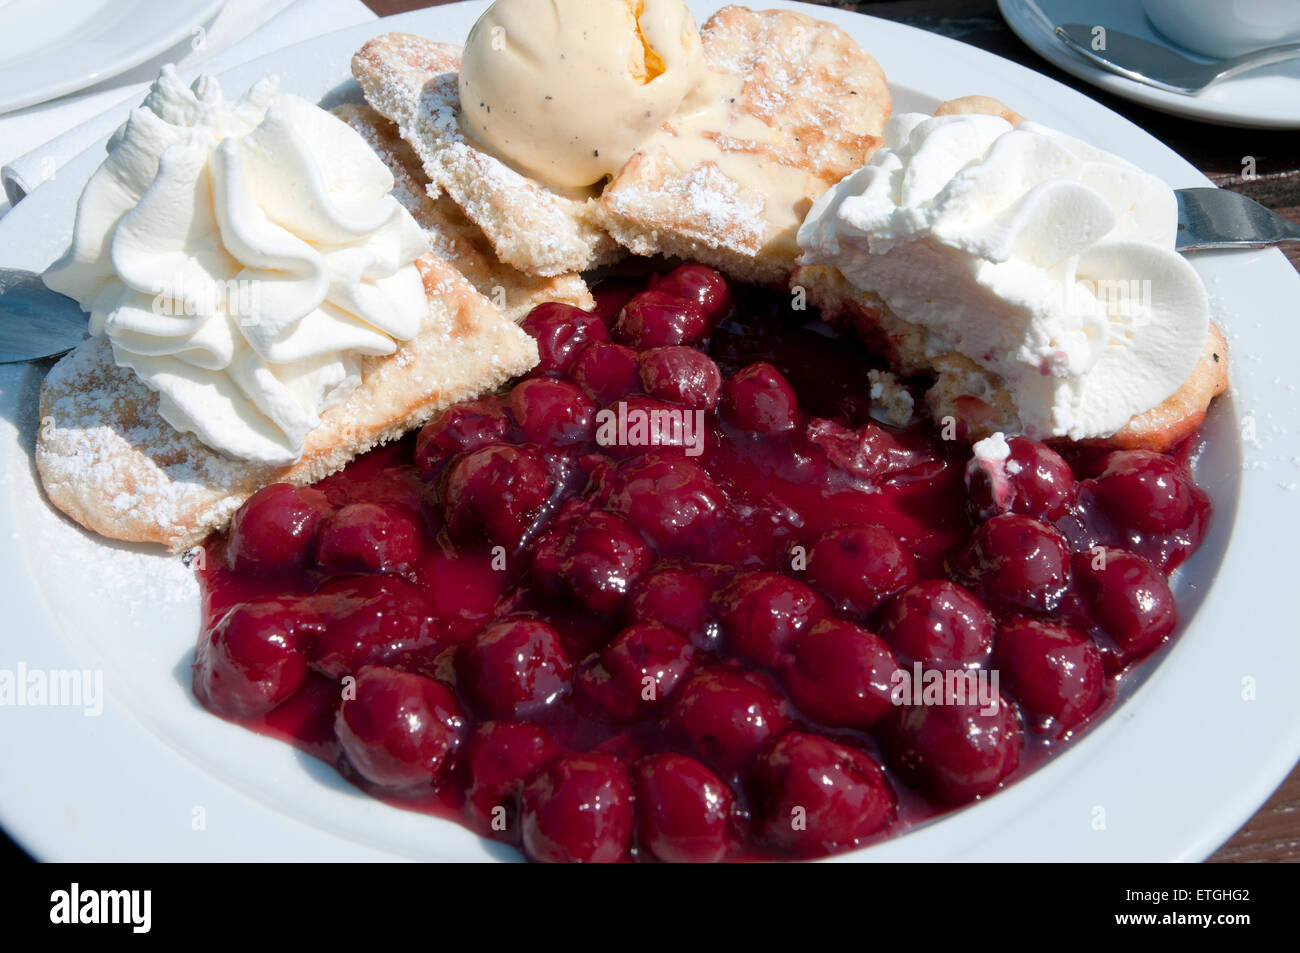 Dessert Waffle with hot cherries,vanilla ice cube and cream in a Cafe Germany Europe - Stock Image